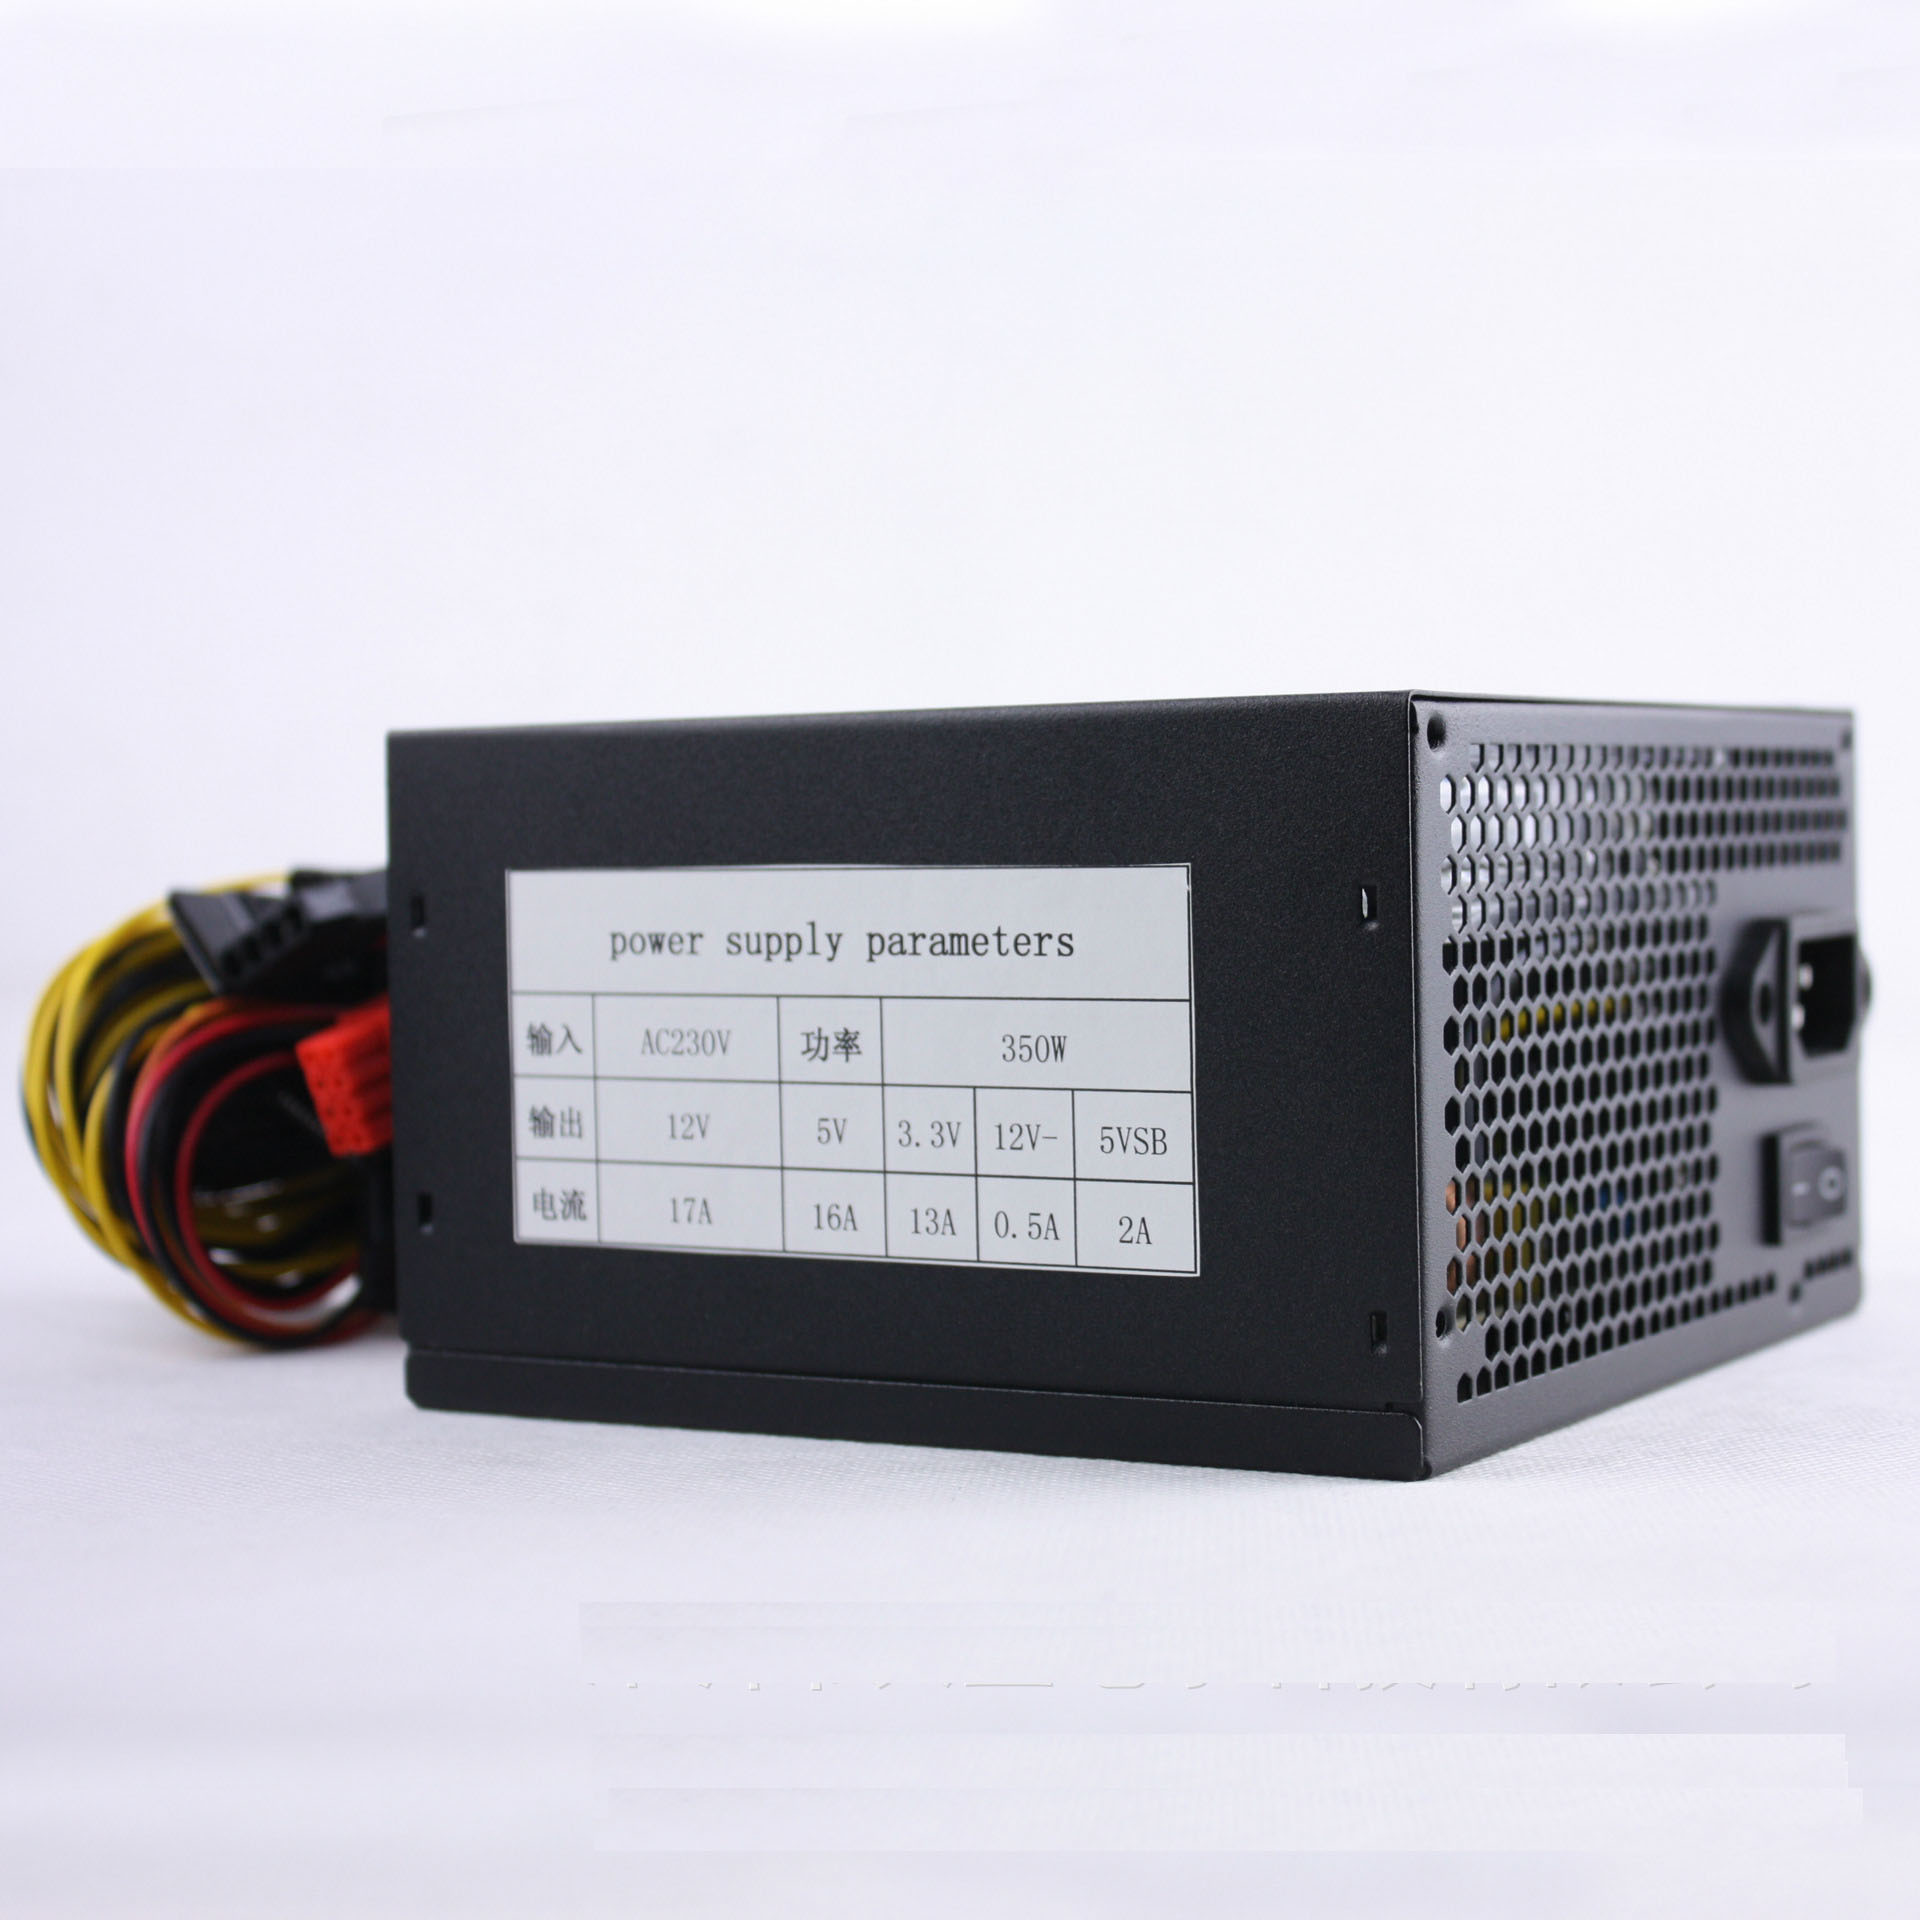 Factory source Psu 500w Power 80plus -